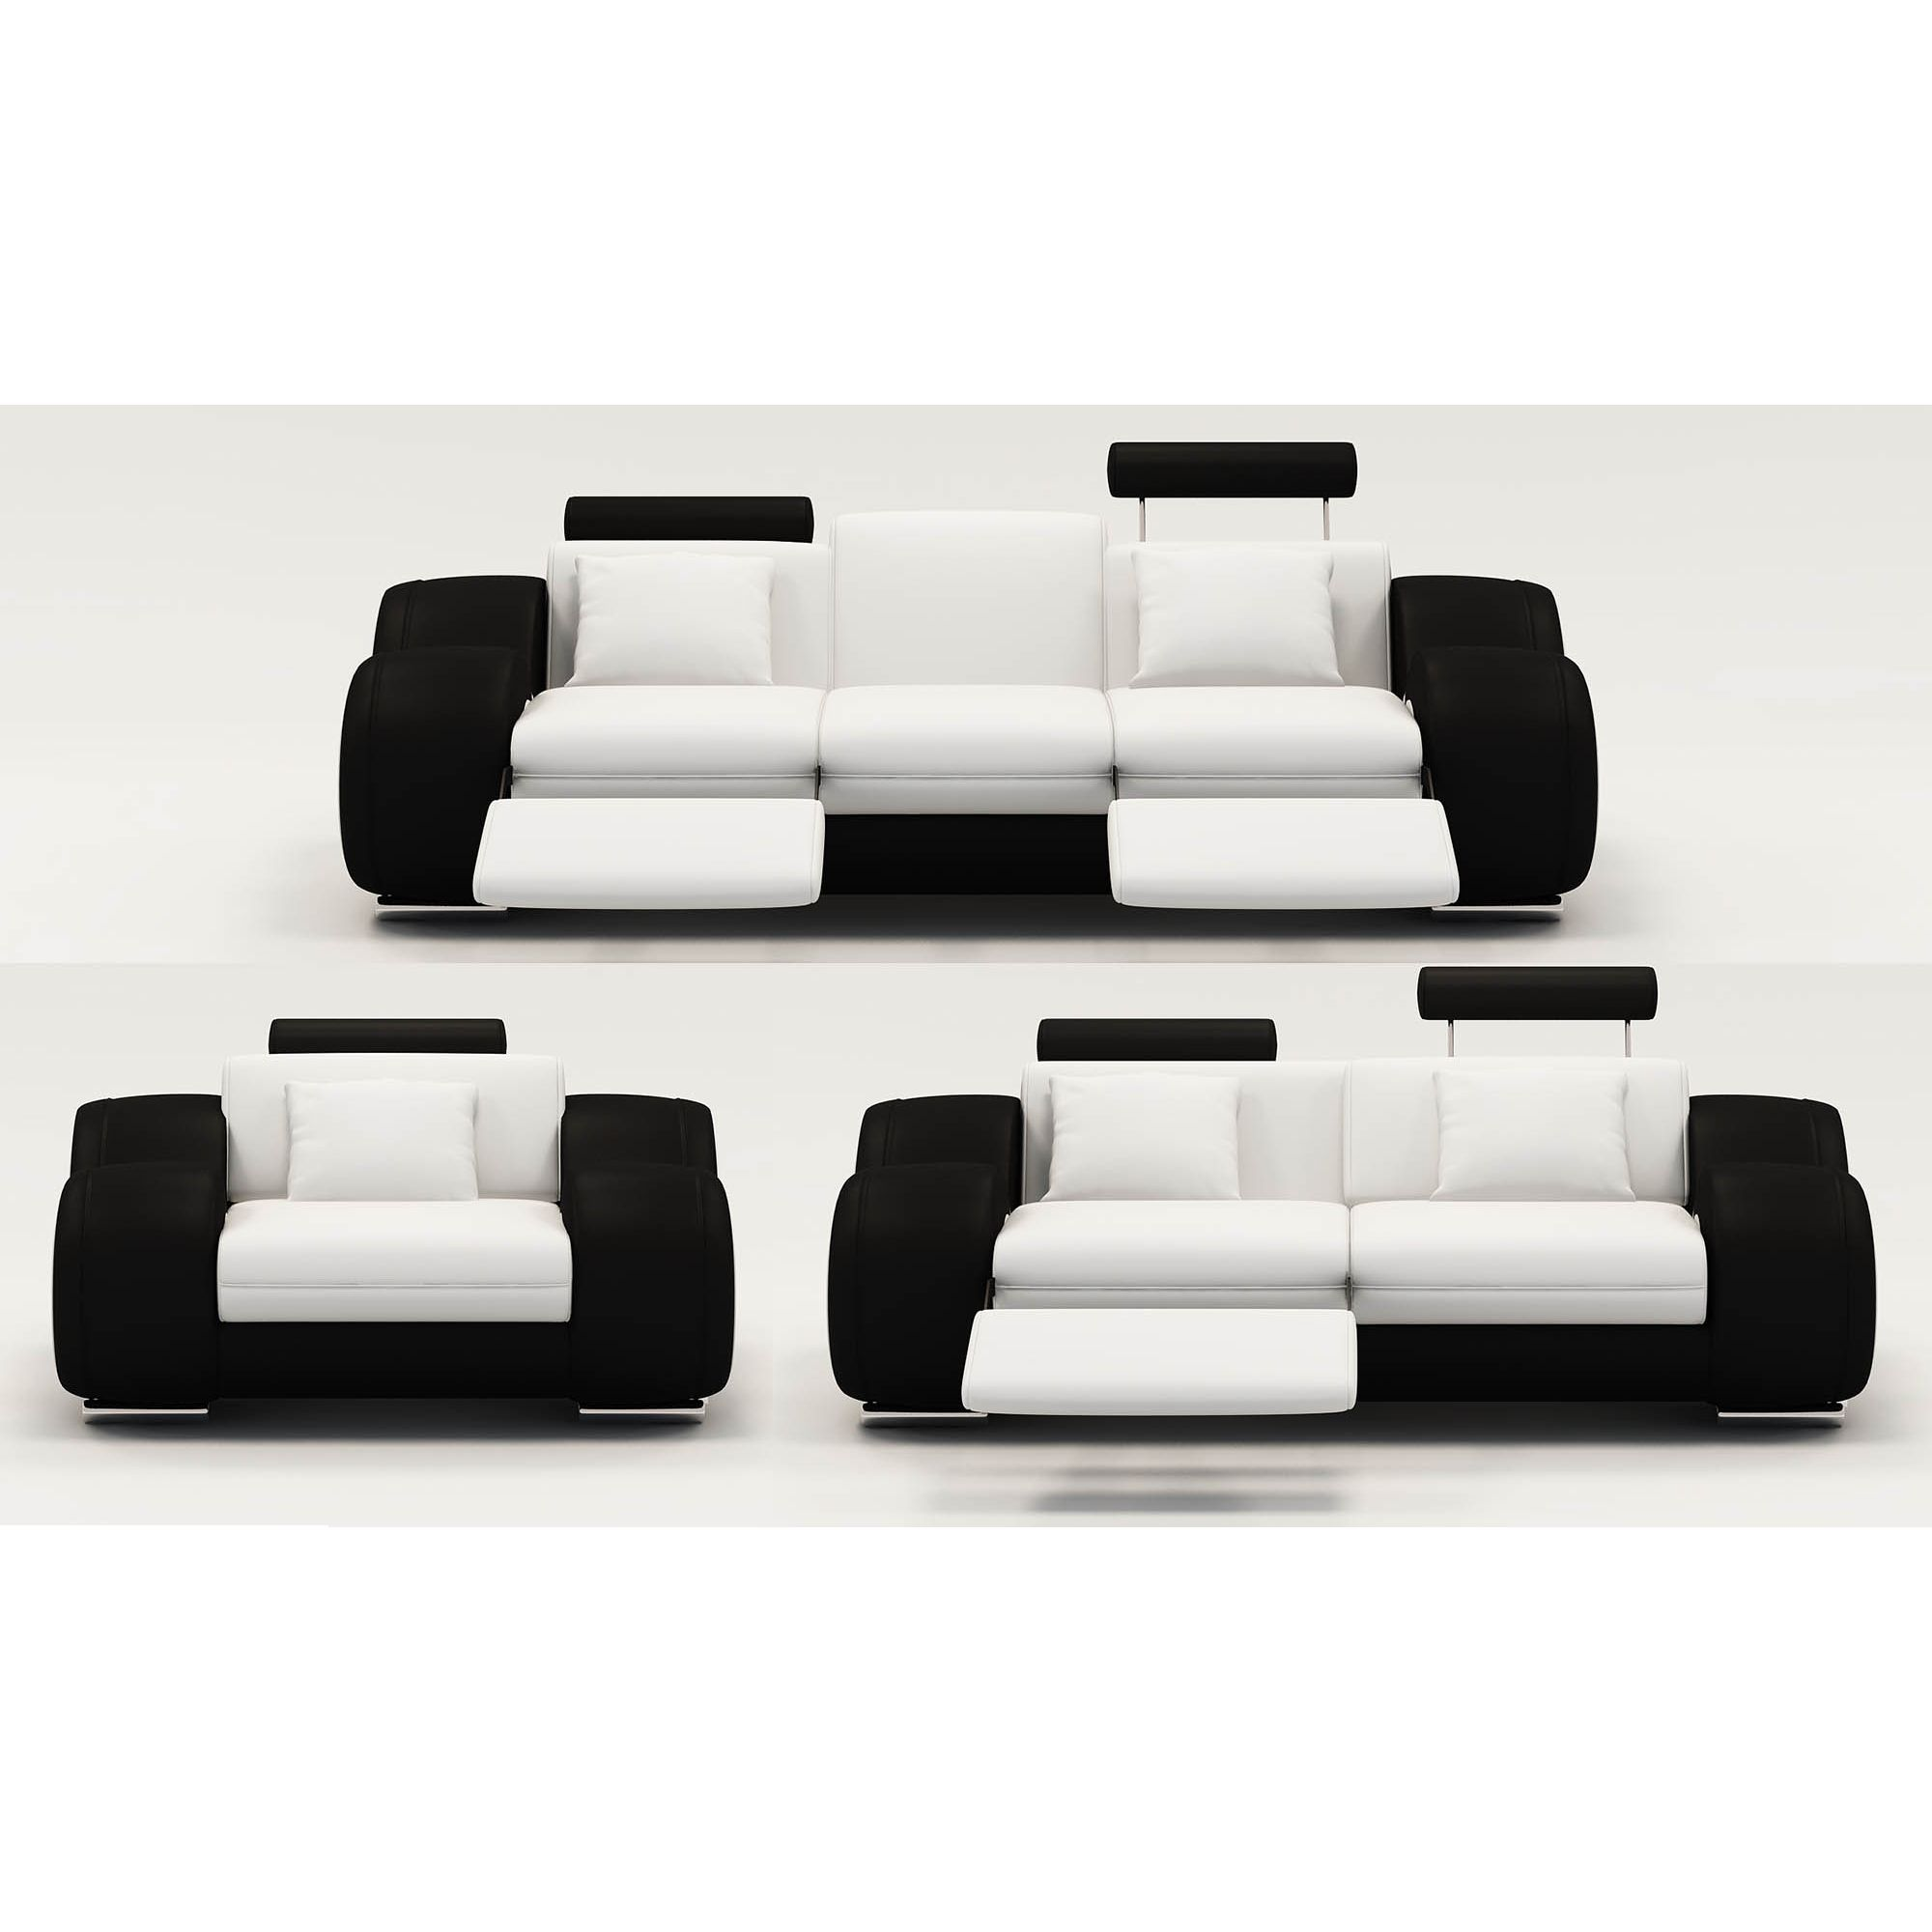 deco in paris ensemble canape relax design 3 2 places blanc et noir oslo oslo 3 2 blanc et noir. Black Bedroom Furniture Sets. Home Design Ideas